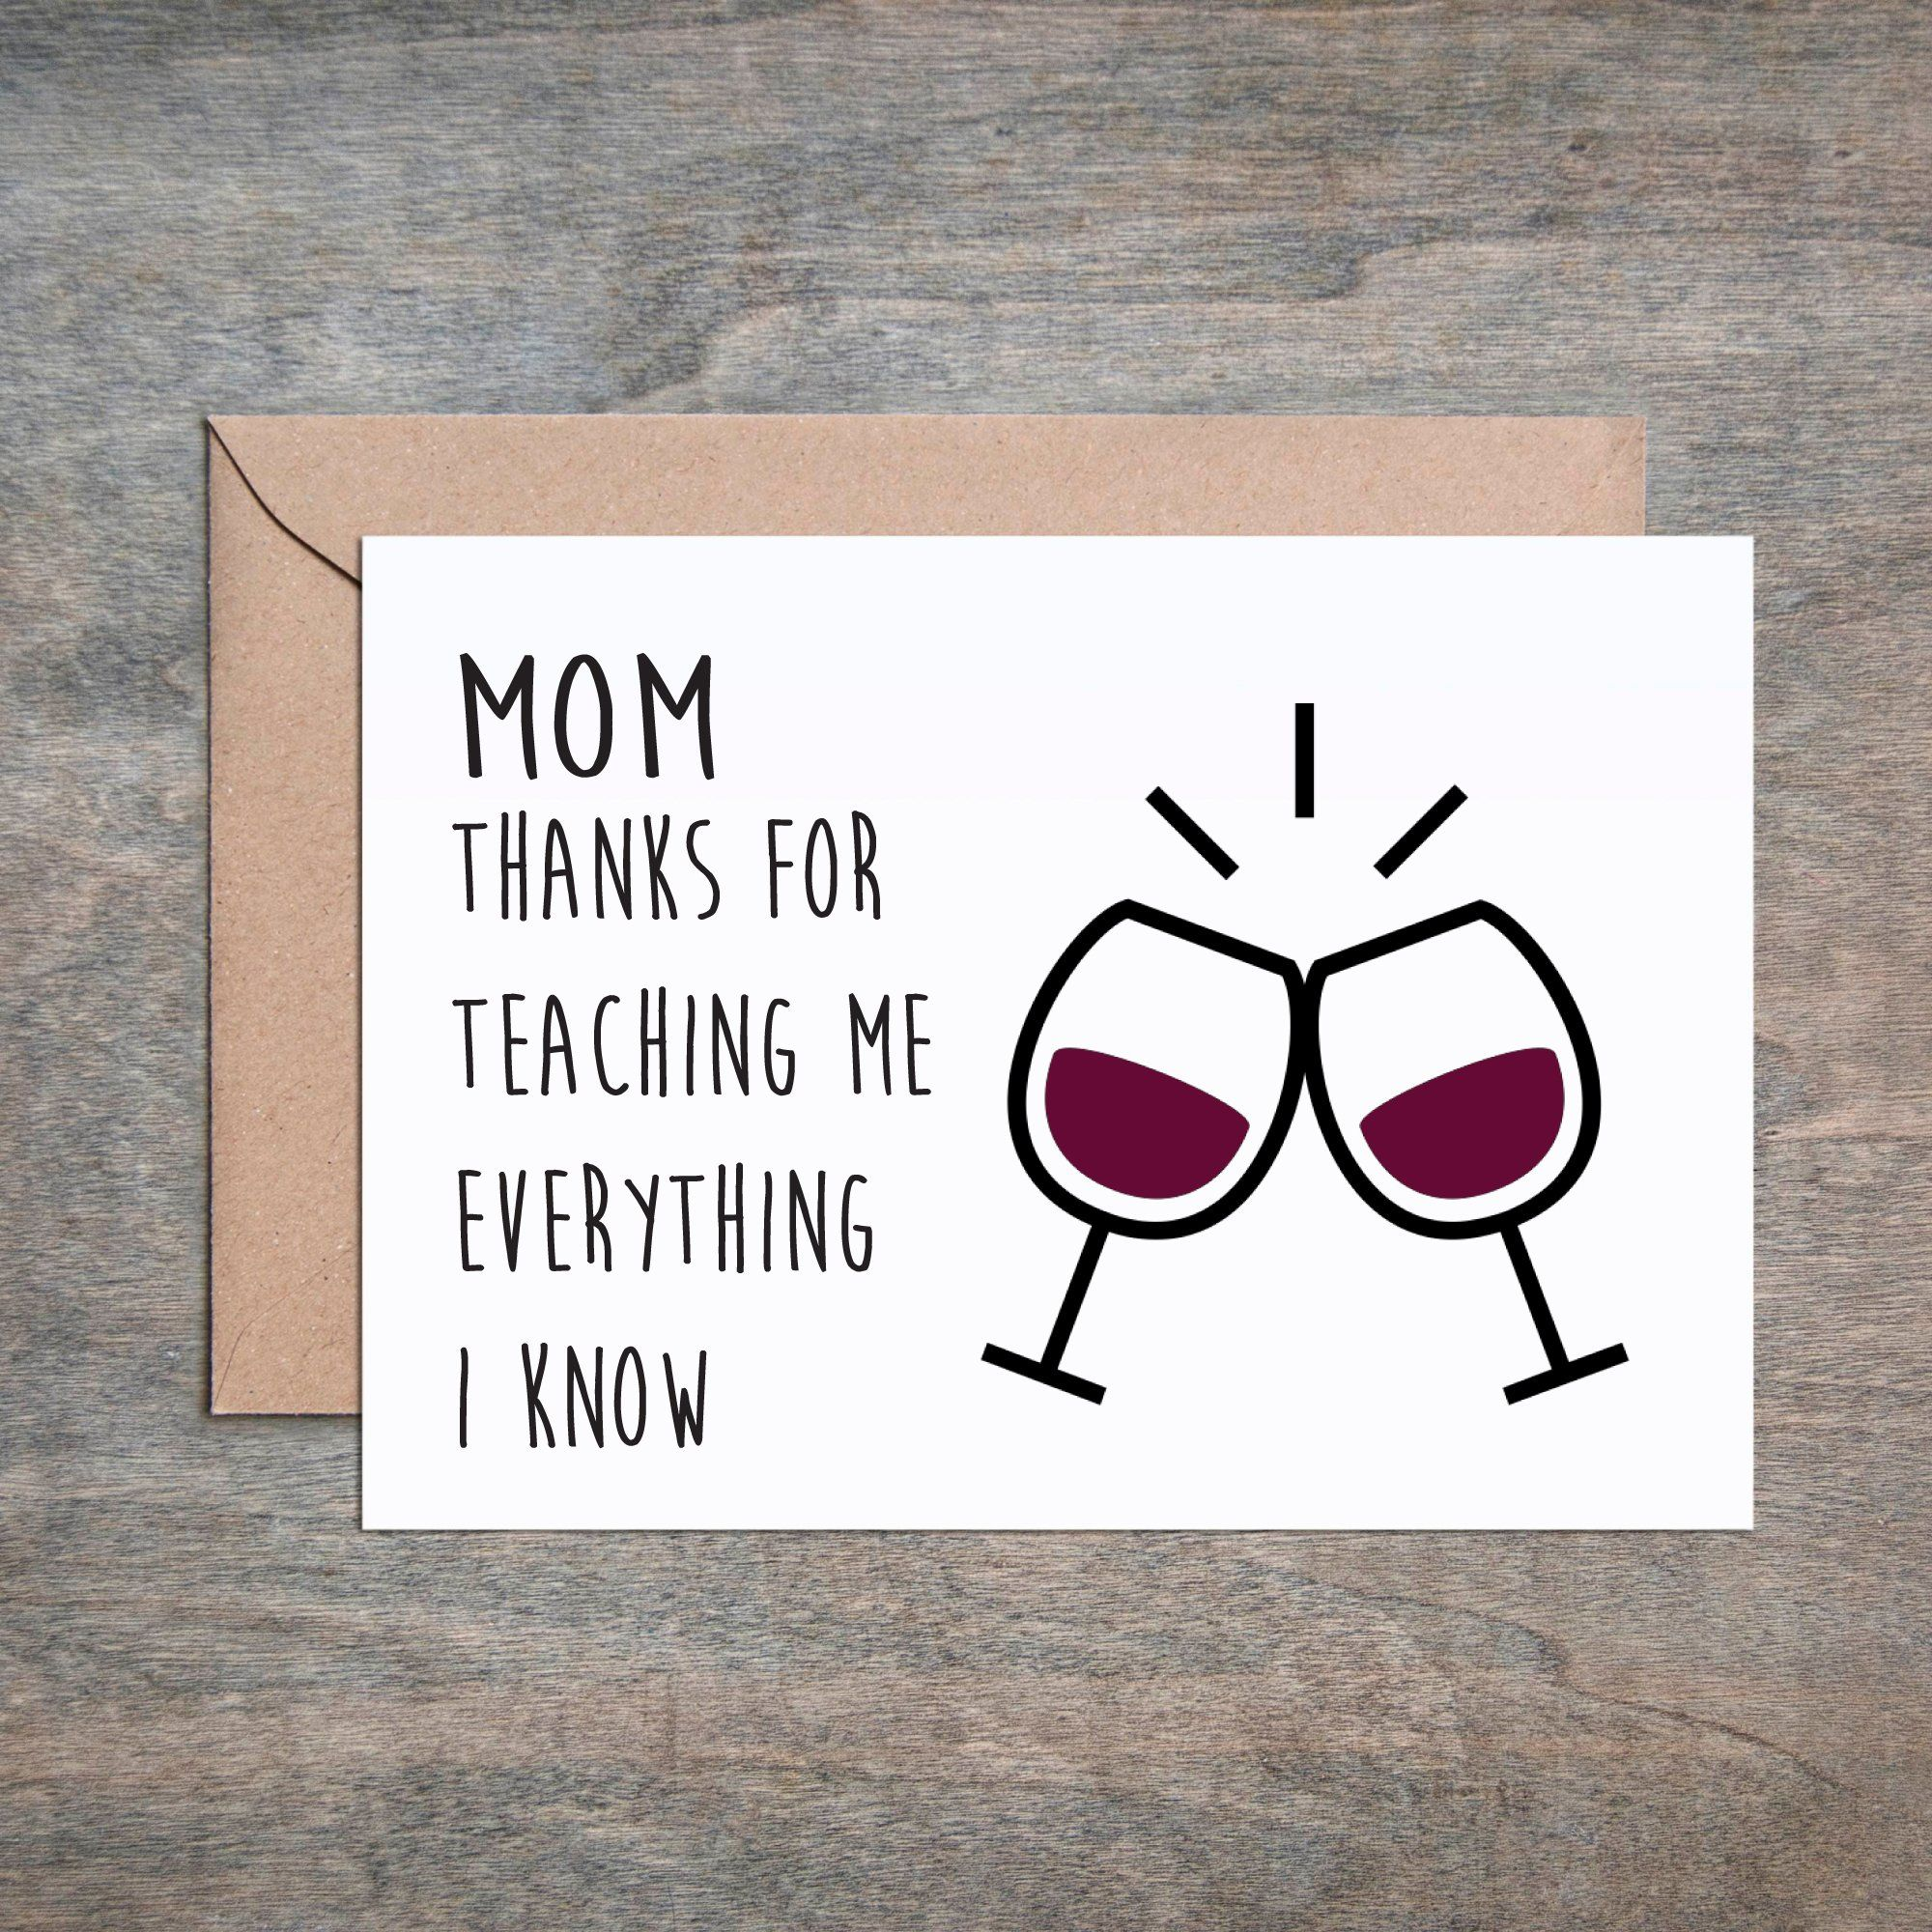 Mom Thanks for Teaching Me Everything I Know Mother s Day Card